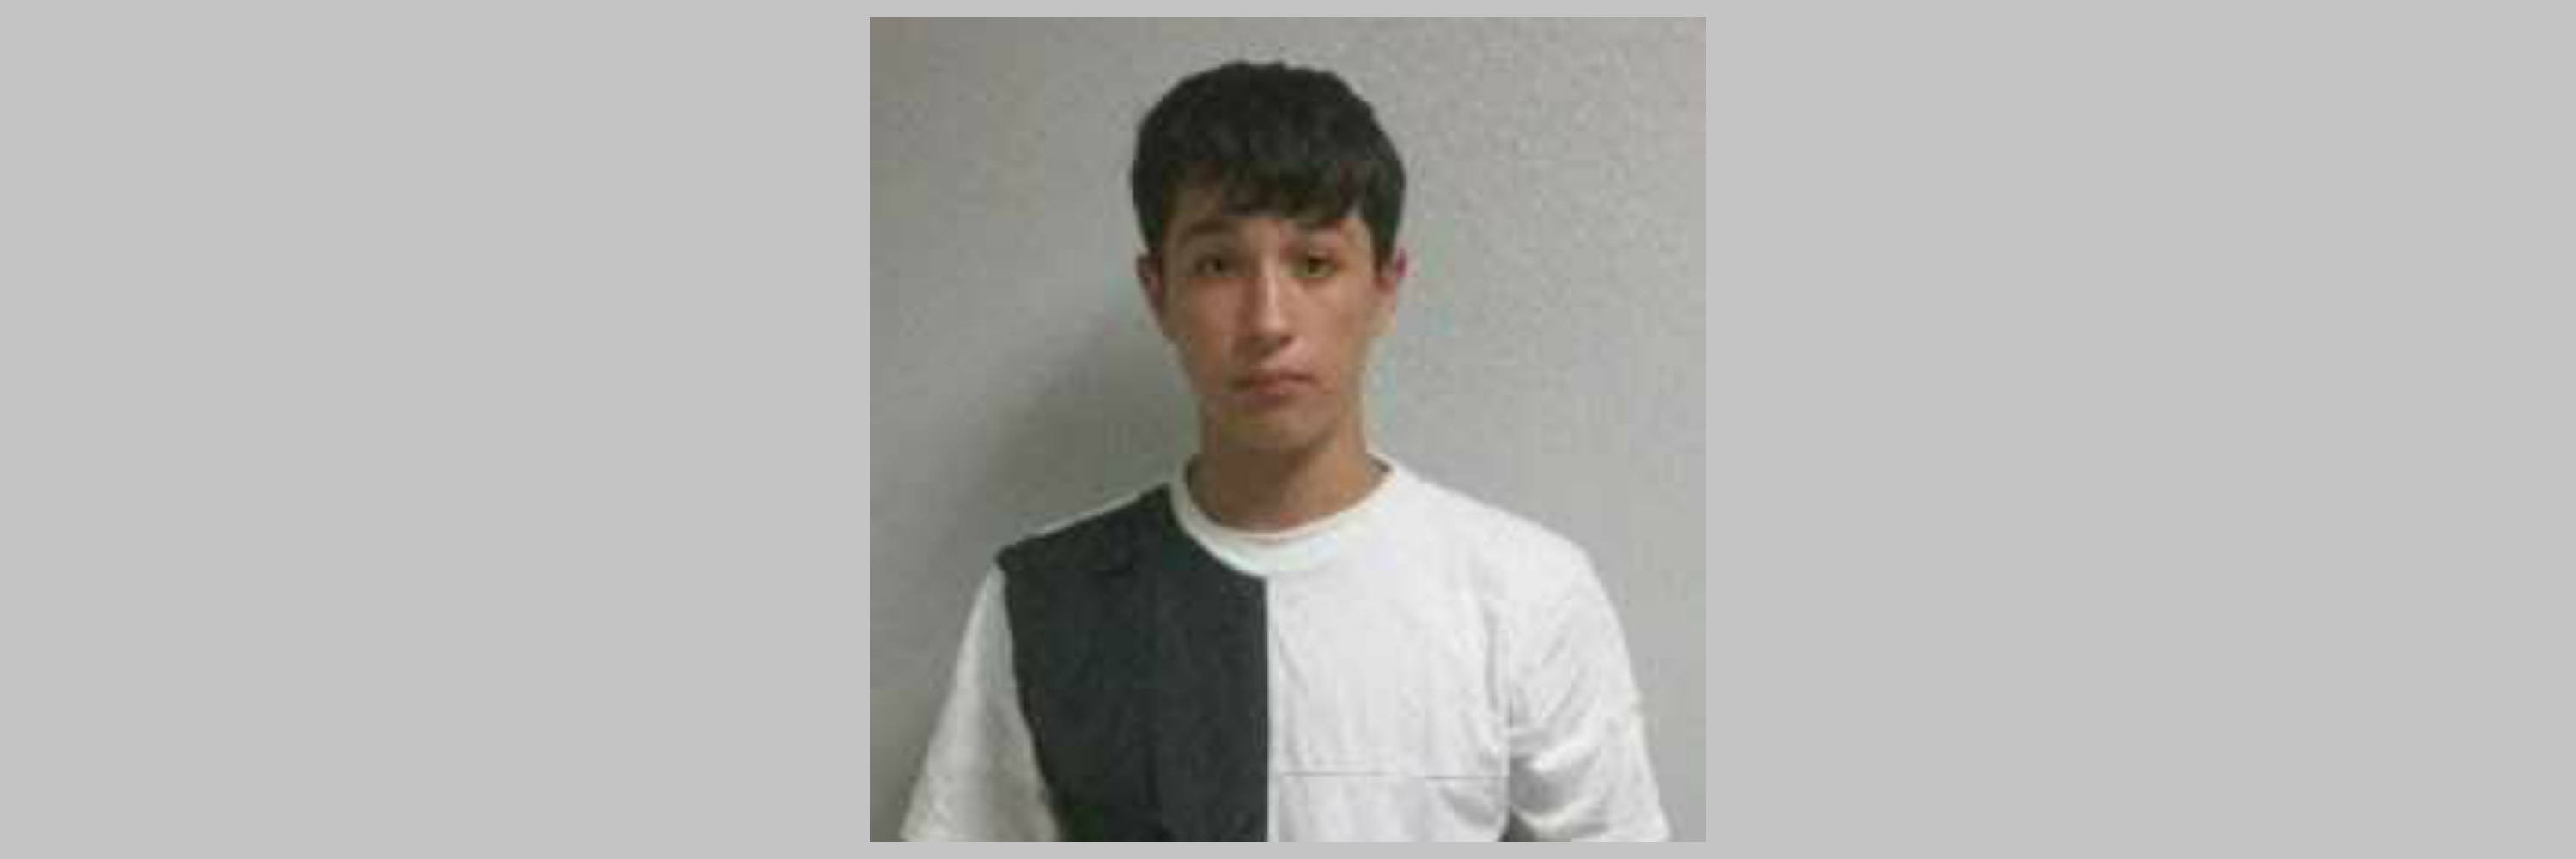 Elias Portillo, the 14-year-old boy, will be charged as an adult, according to police. (Photo: Prince George's County police)